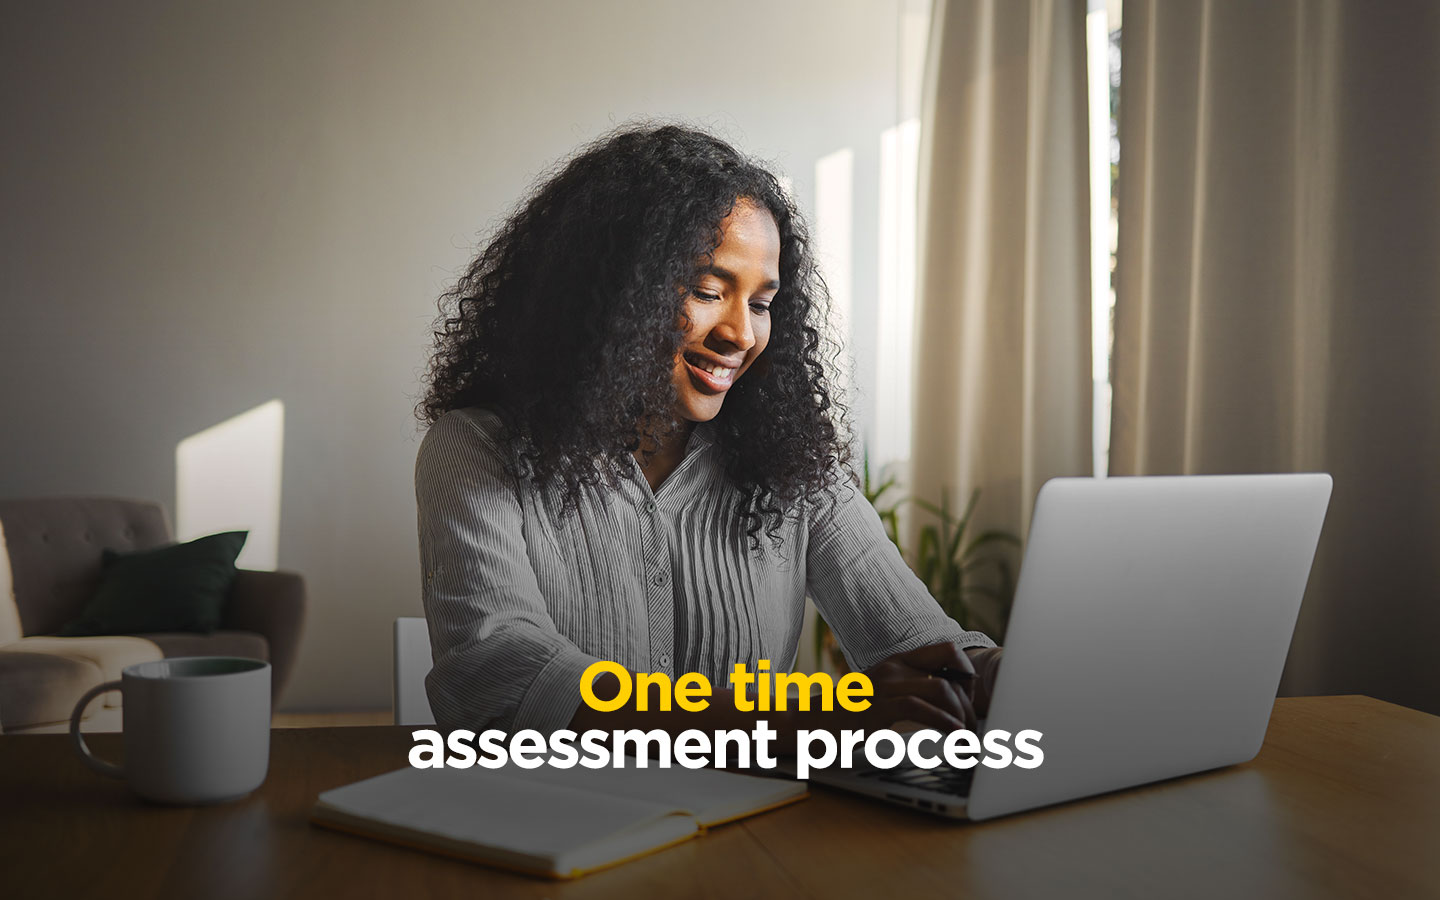 one time assessment process